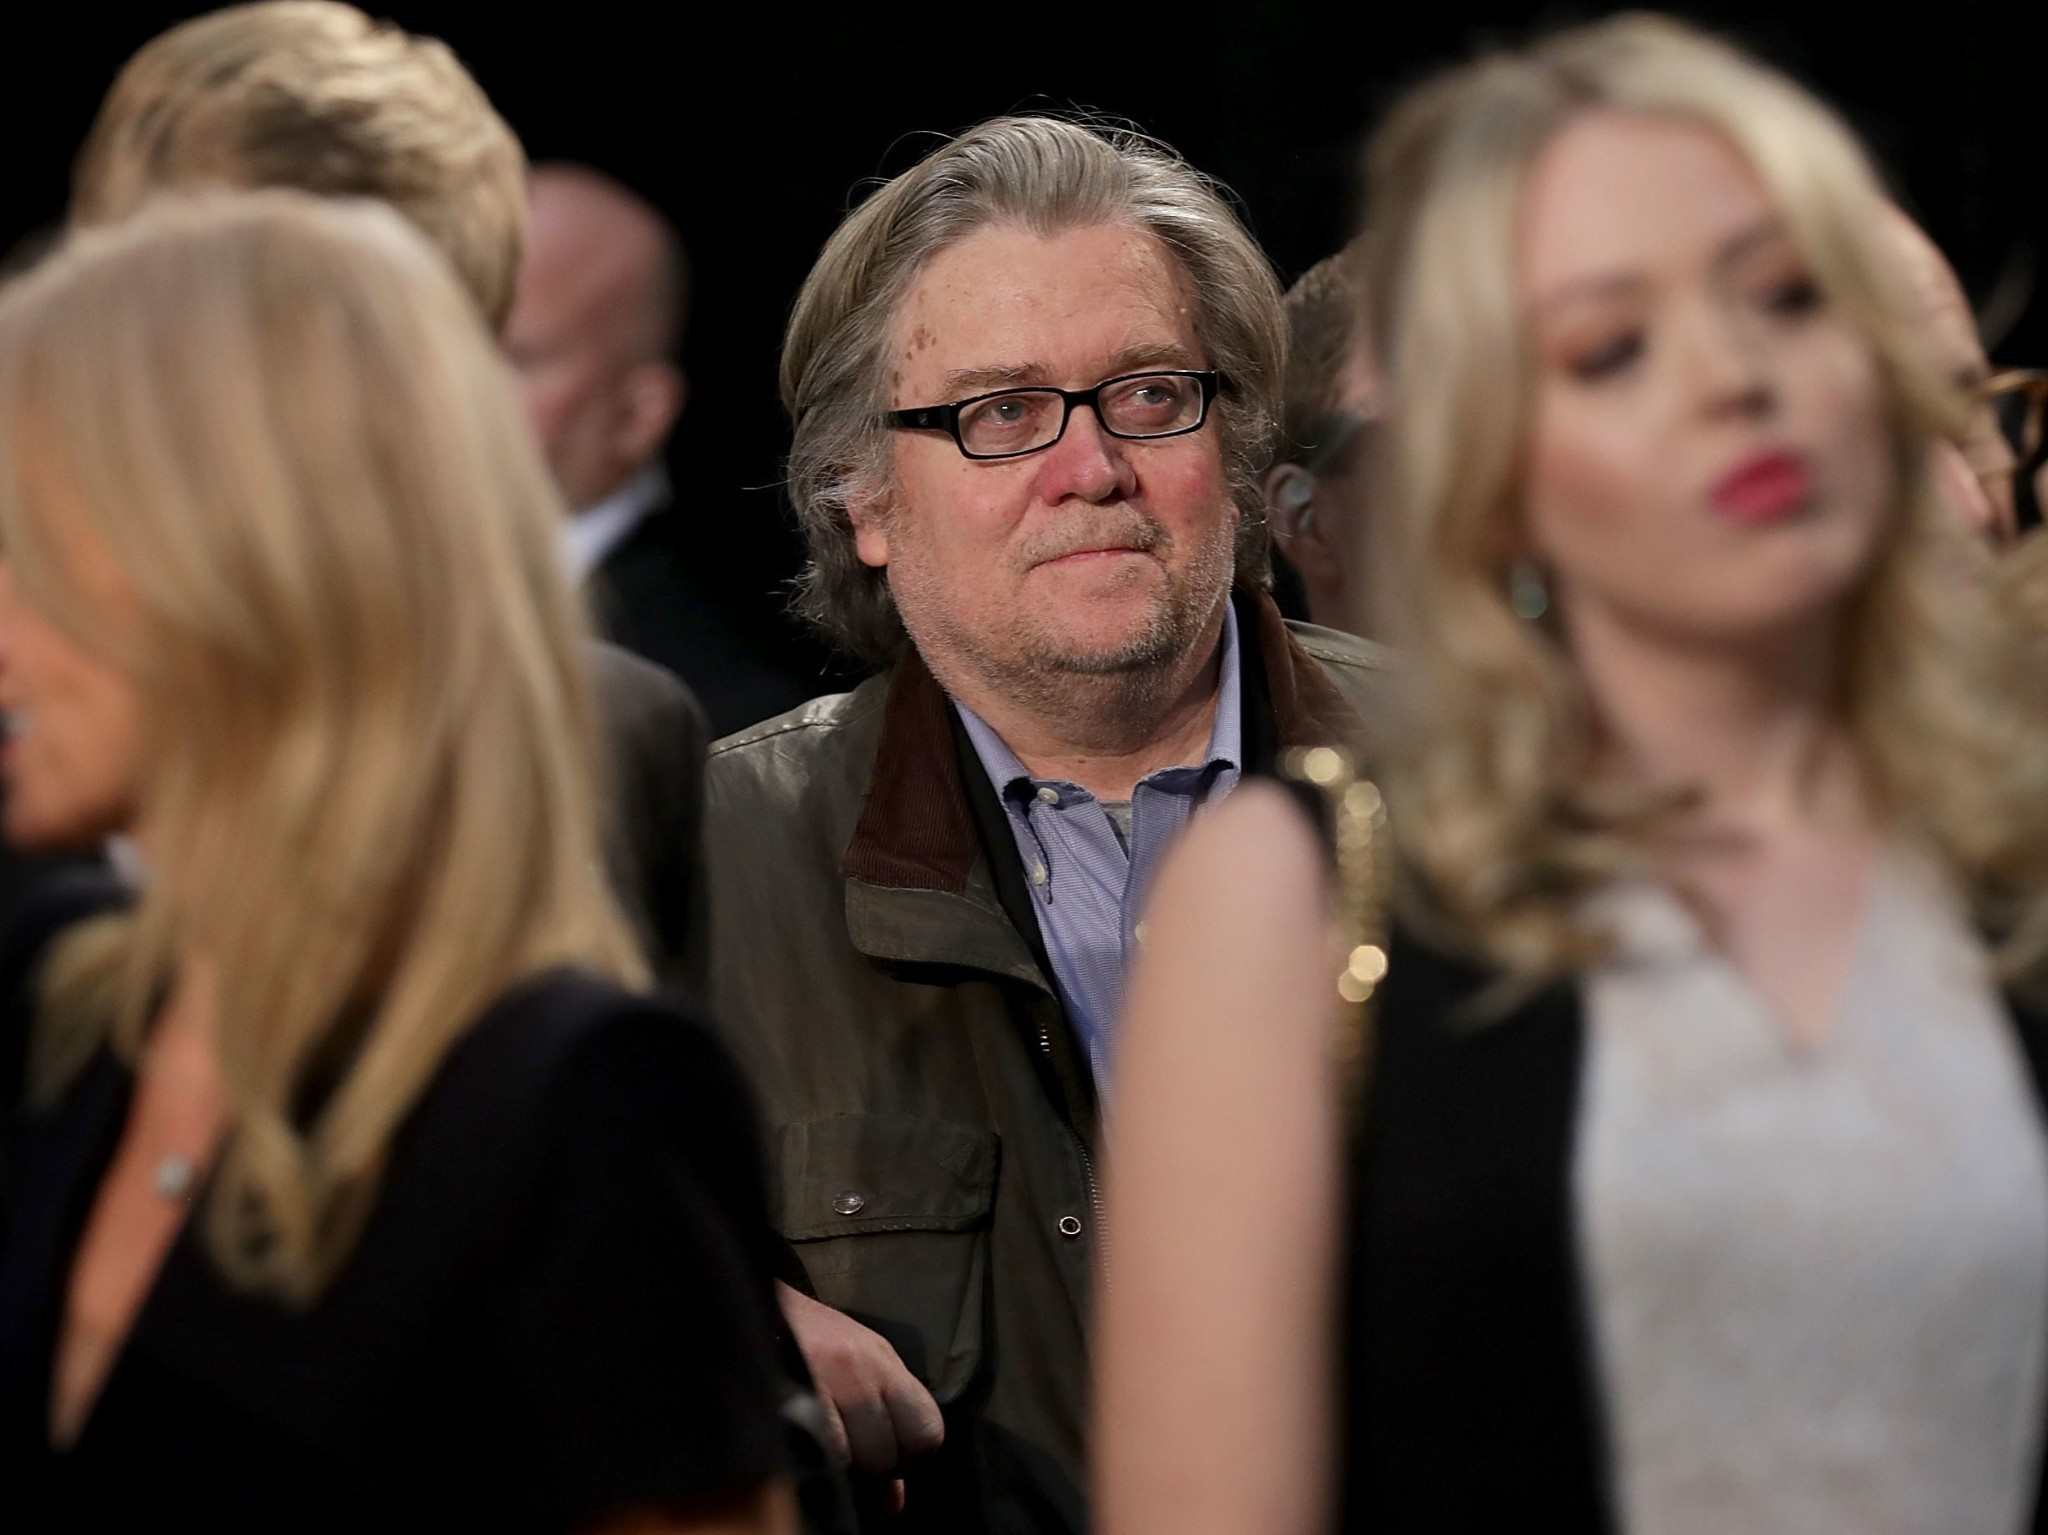 Steve Bannon, Donald Trump's Closest Adviser, Just Wants to See the World Burn